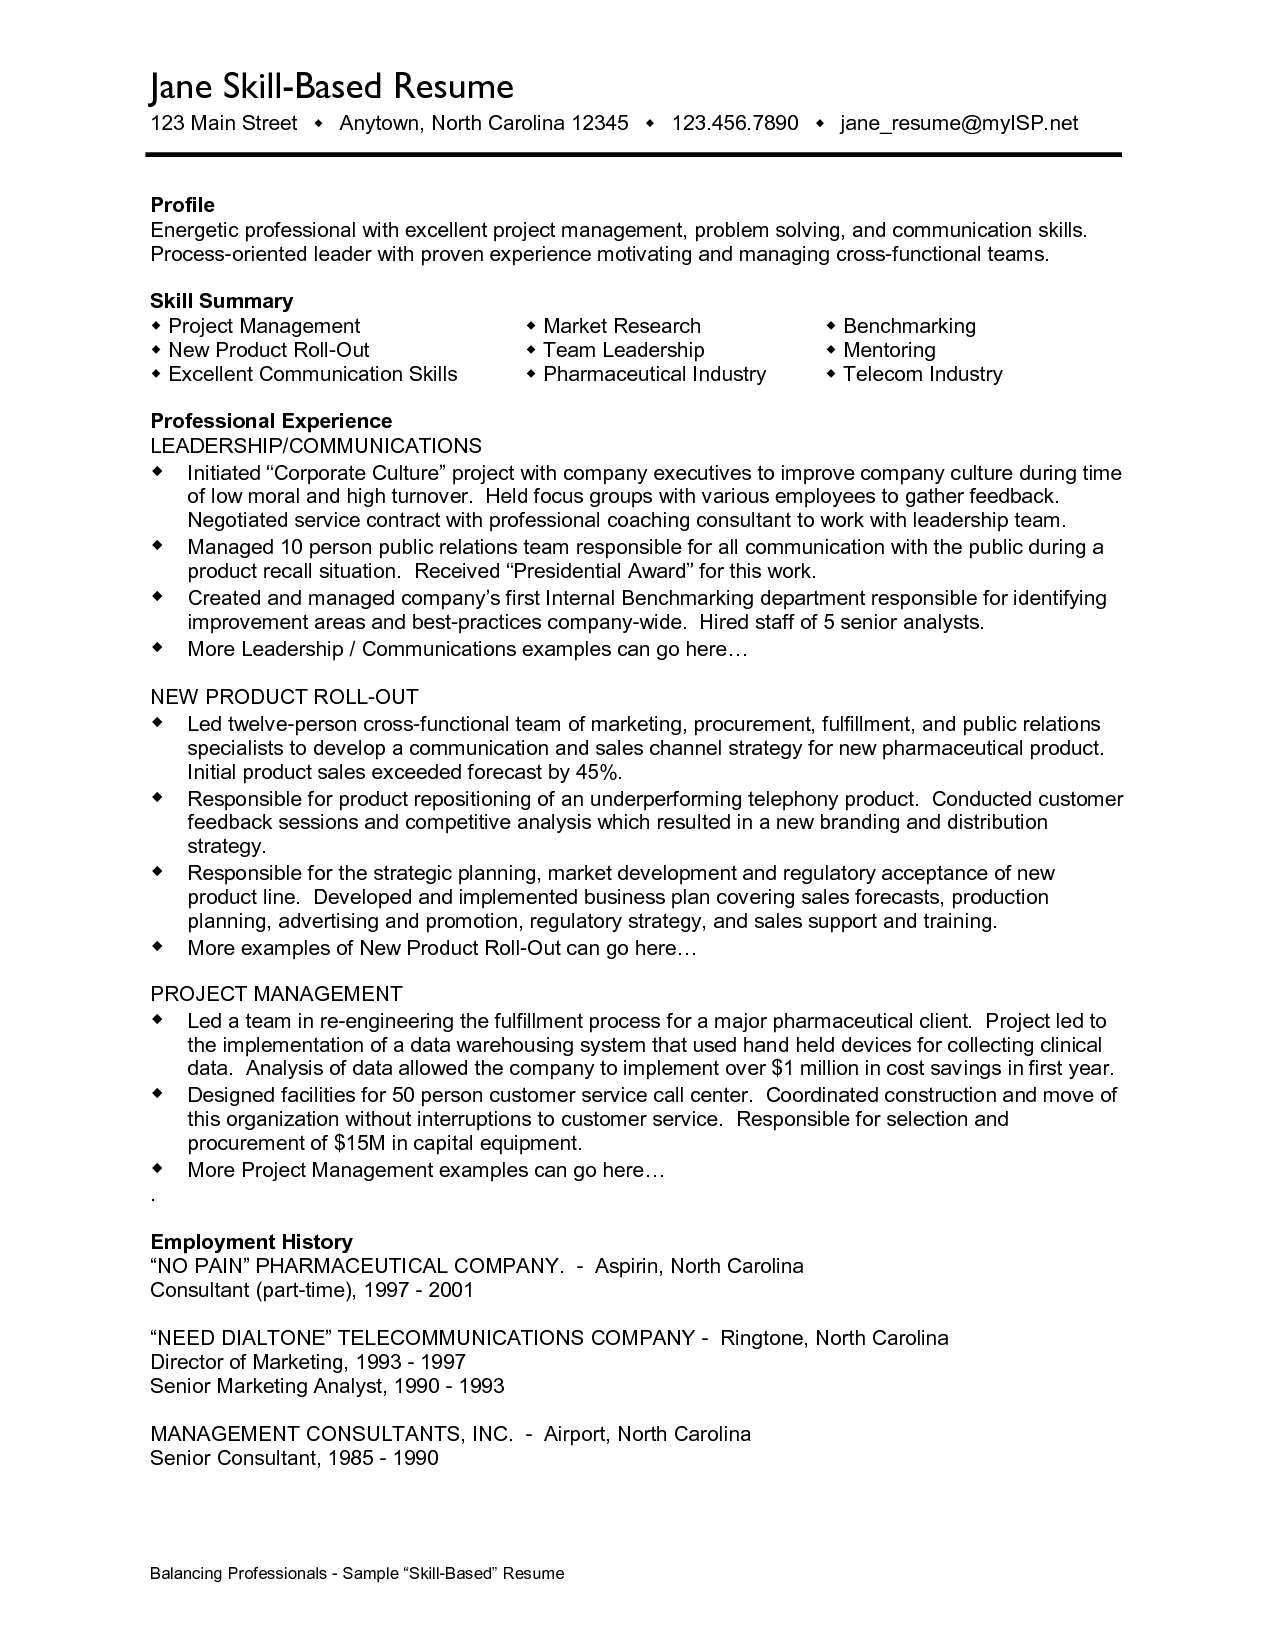 Resume Examples Skills Delectable Job Resume Communication Skills  Httpwwwresumecareerjob Inspiration Design